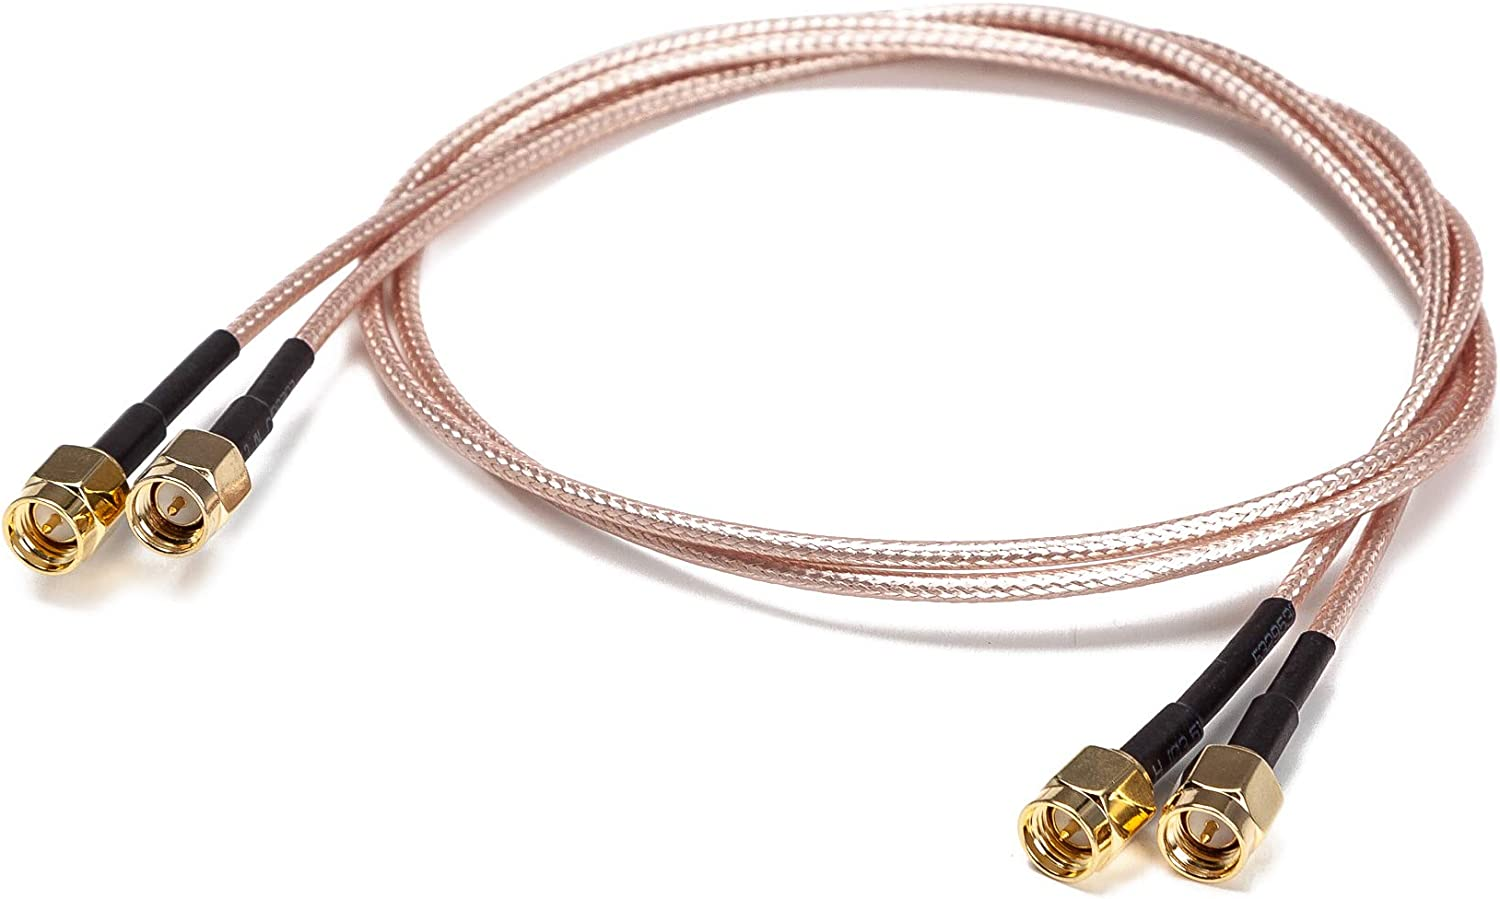 RFAdapter 2-Pack 0.5ft SMA Male to Male RF Coaxial Coax Cable RG316 Antenna Extender Adapter Jumper SMA Cable